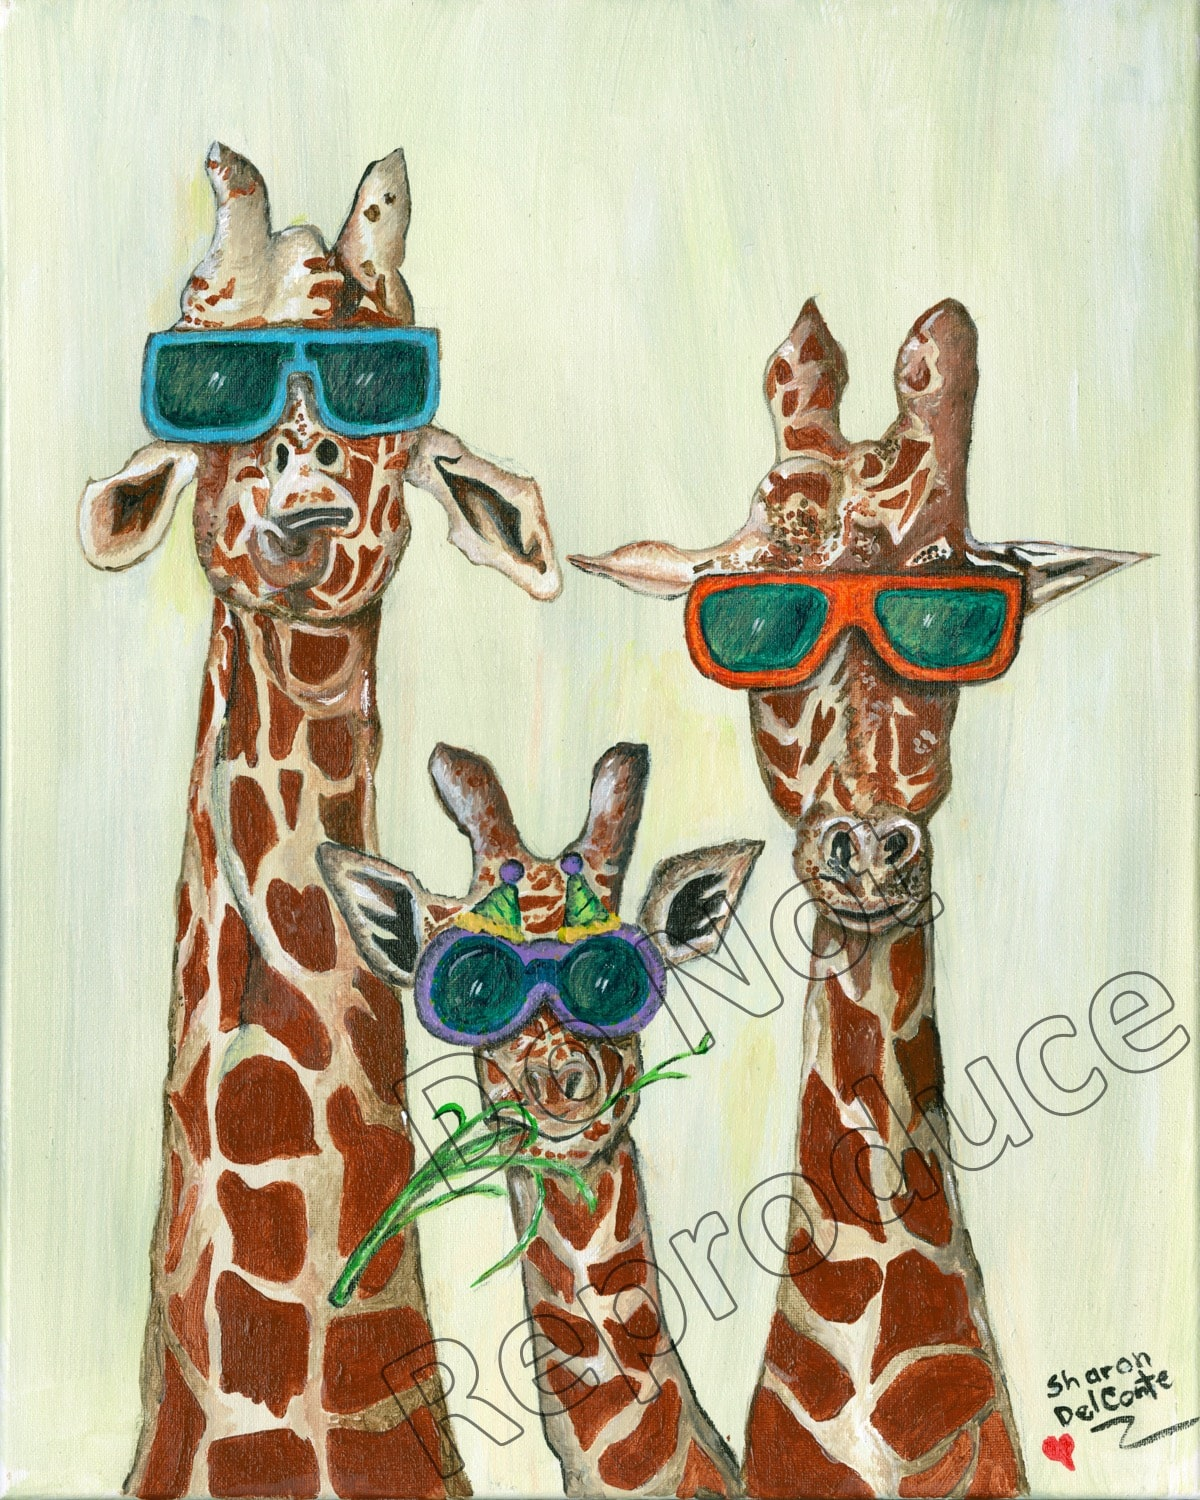 Giraffes with Glasses